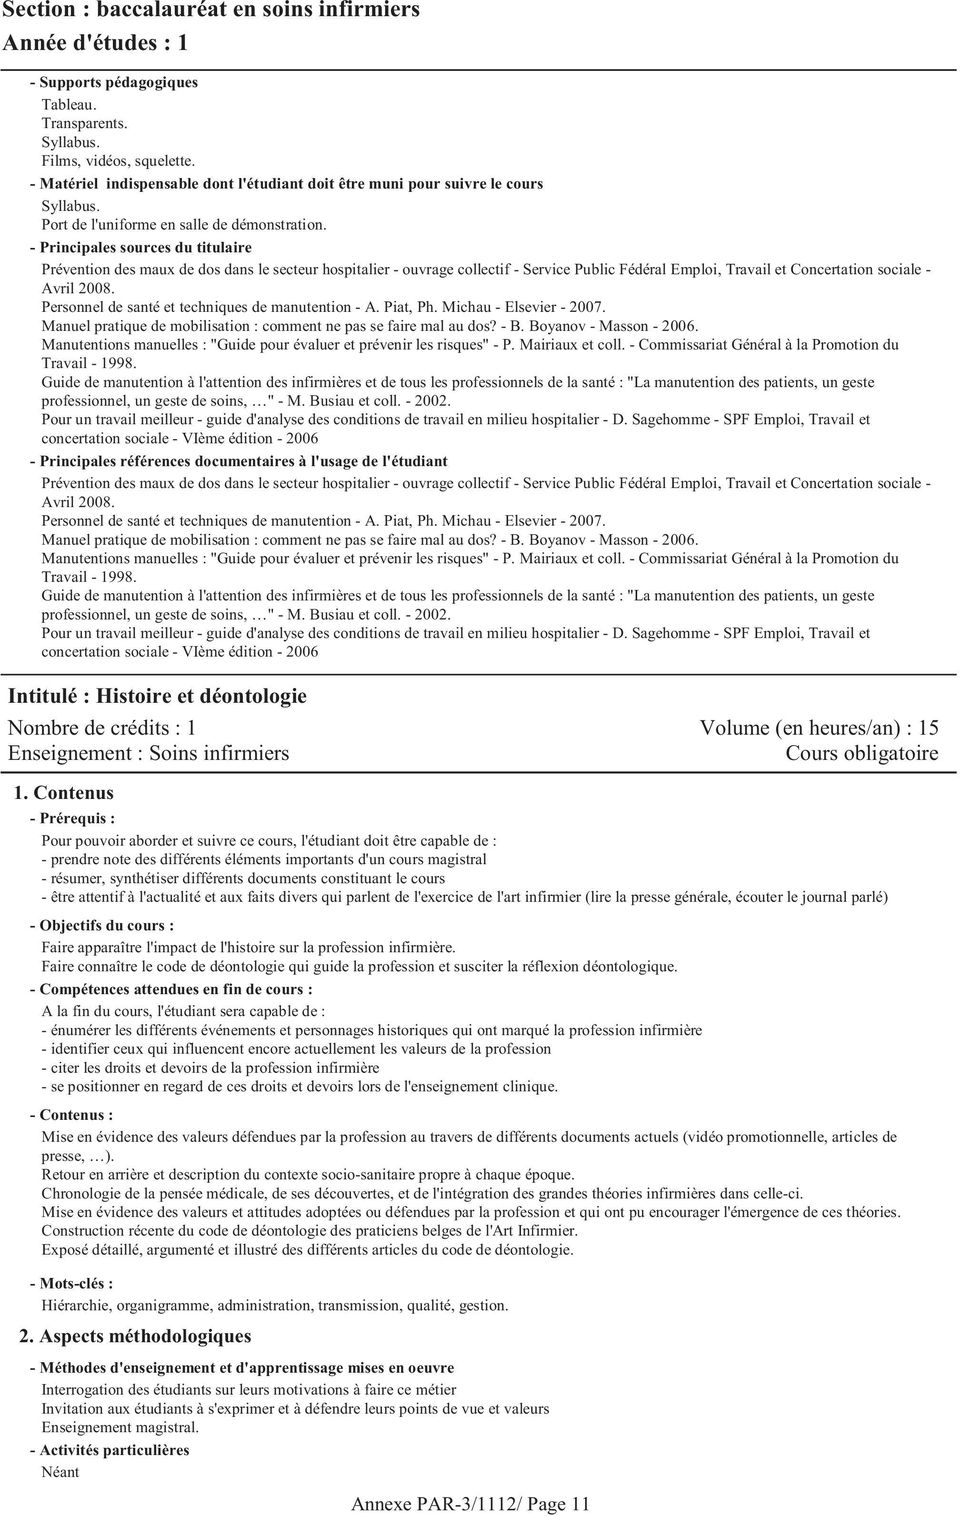 Personnel de santé et techniques de manutention - A. Piat, Ph. Michau - Elsevier - 2007. Manuel pratique de mobilisation : comment ne pas se faire mal au dos? - B. Boyanov - Masson - 2006.